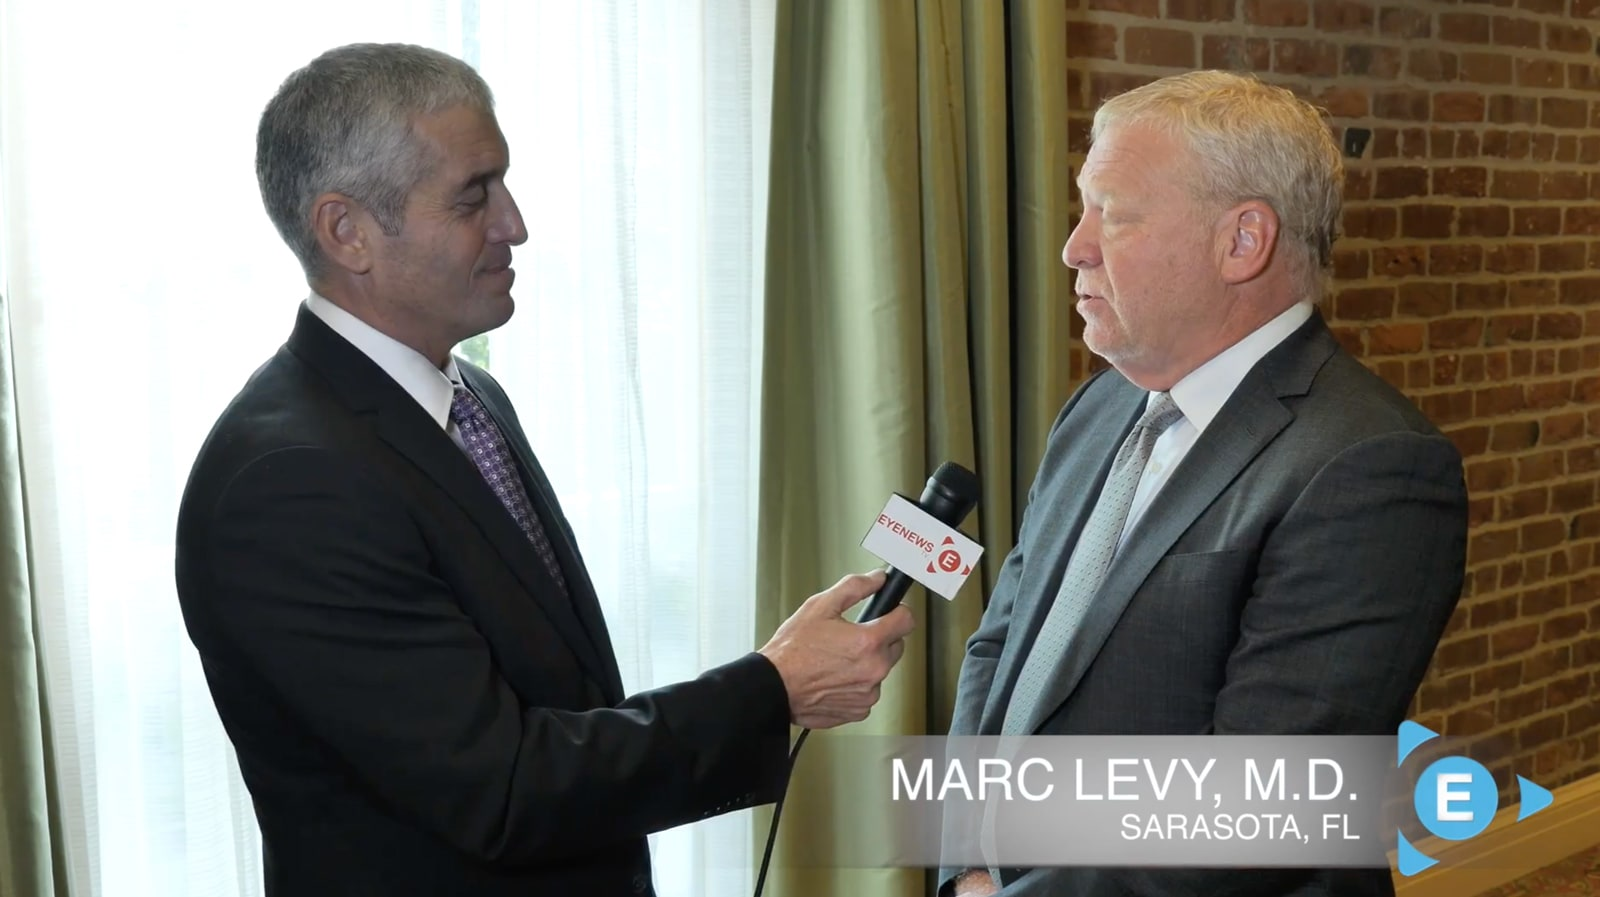 Dr. Marc Levy, M.D. on Possibly Improvements in Quality of Life with the Telescope Implant